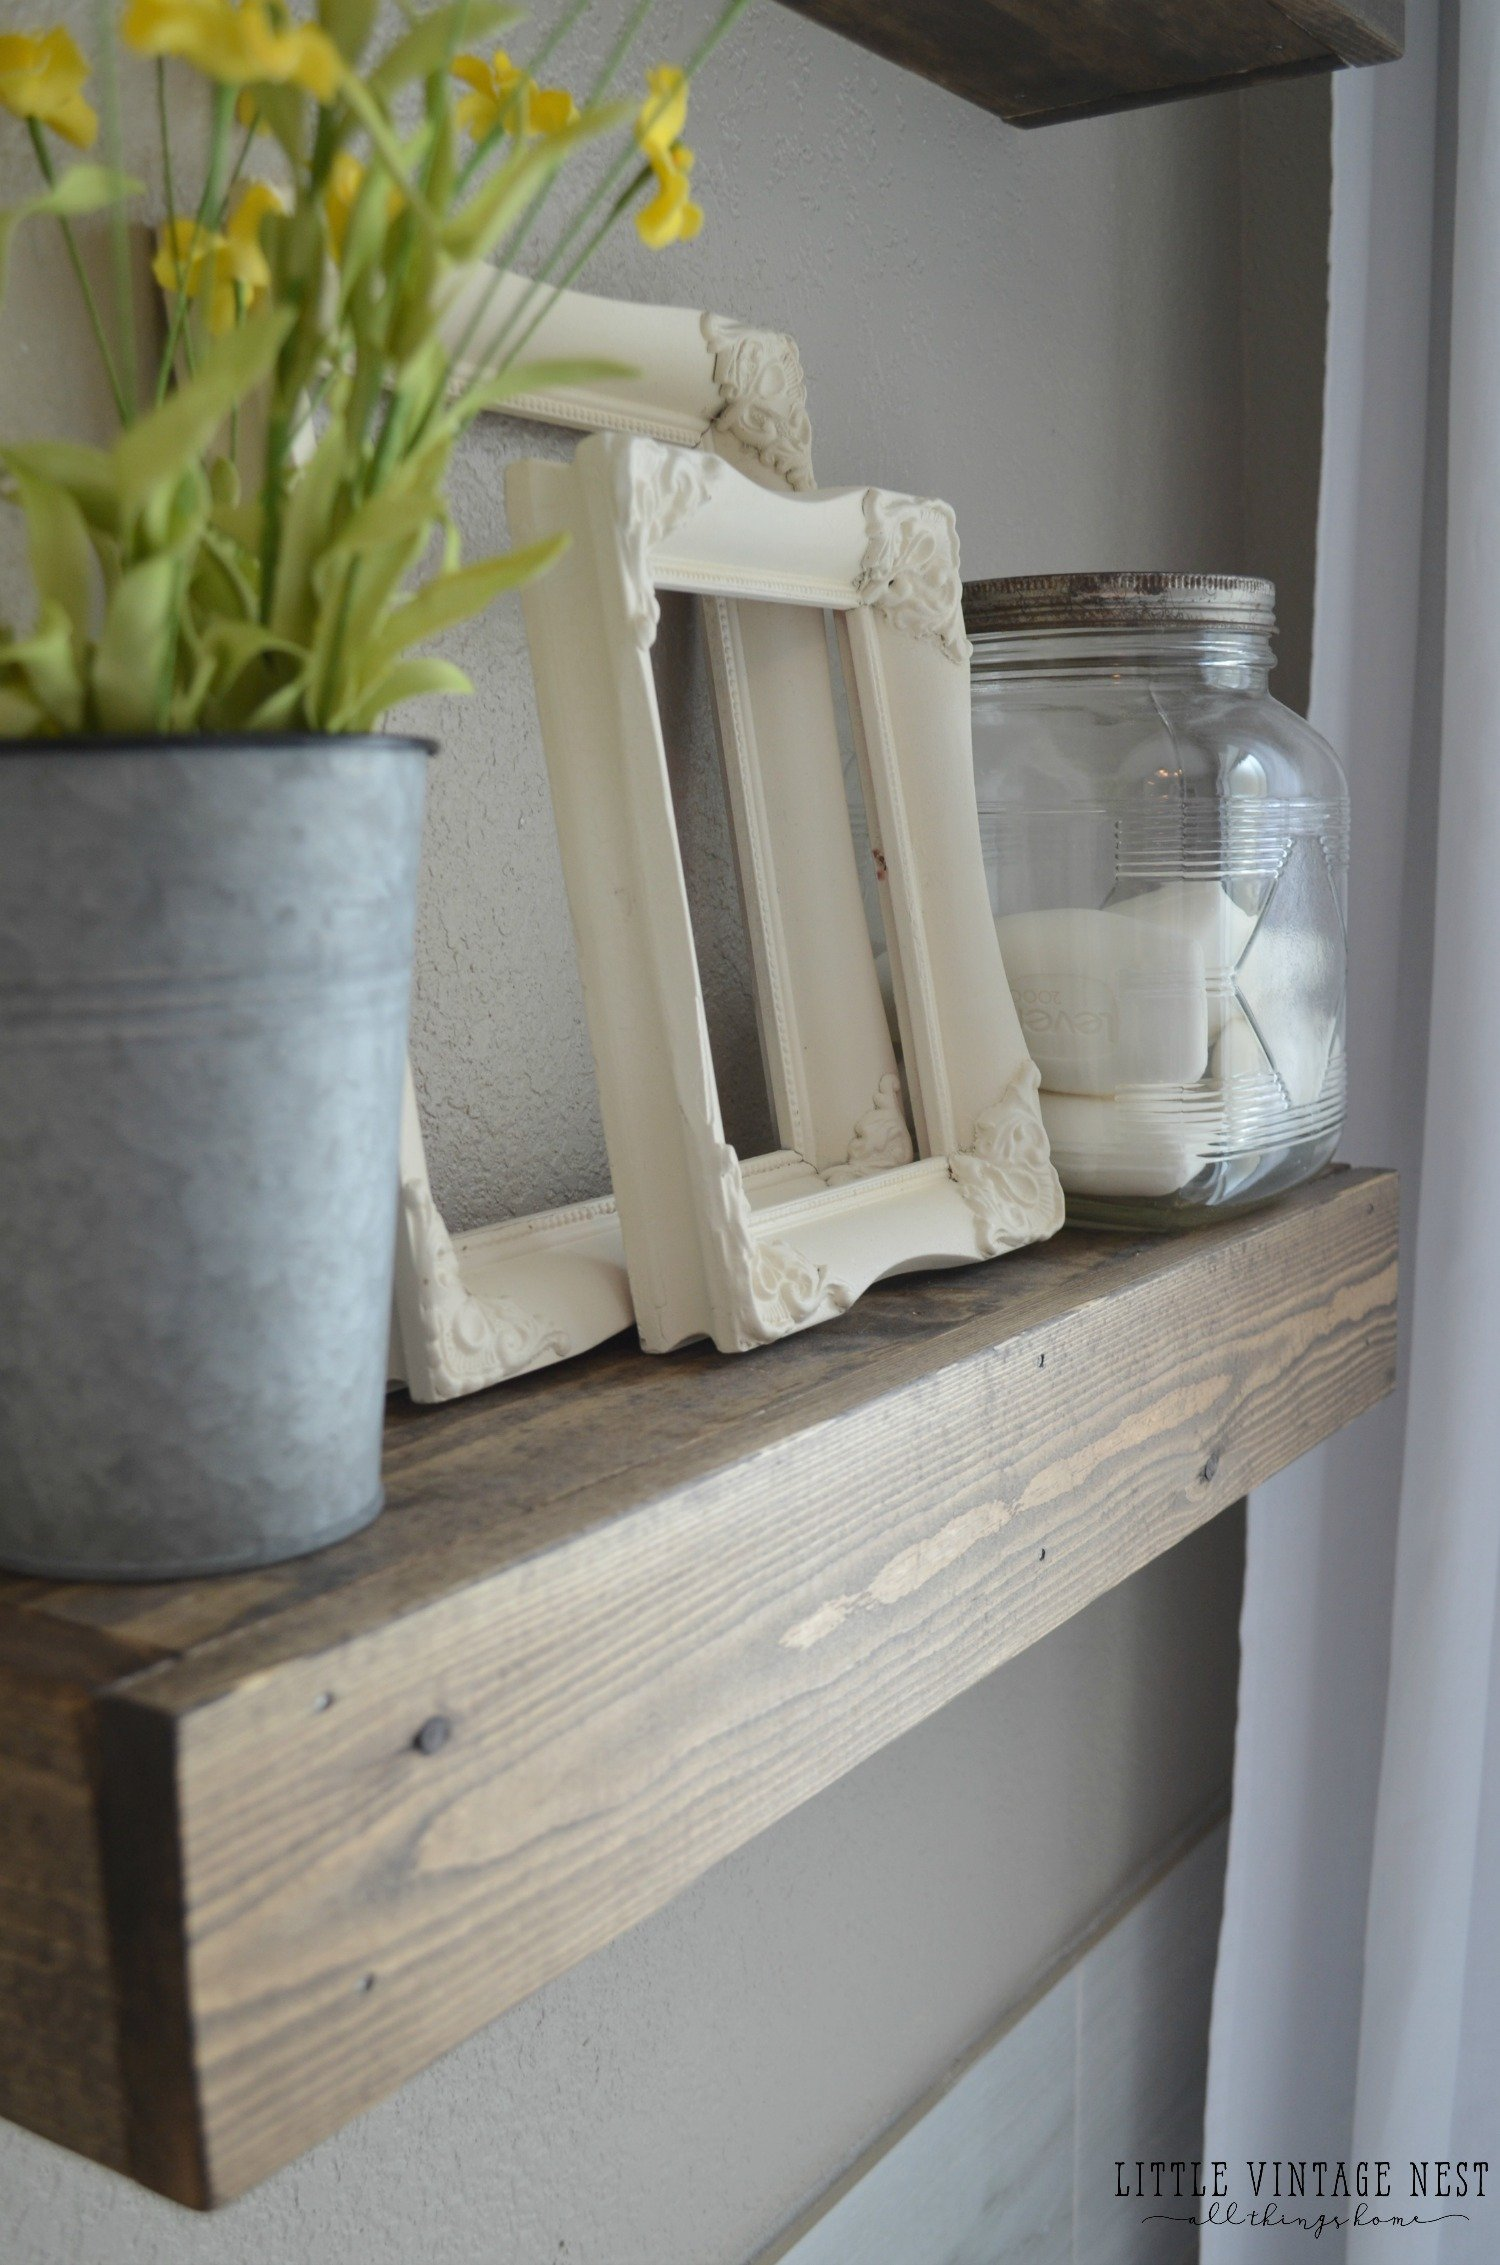 Farmhouse Bathroom Decor Mason Jar and Soap